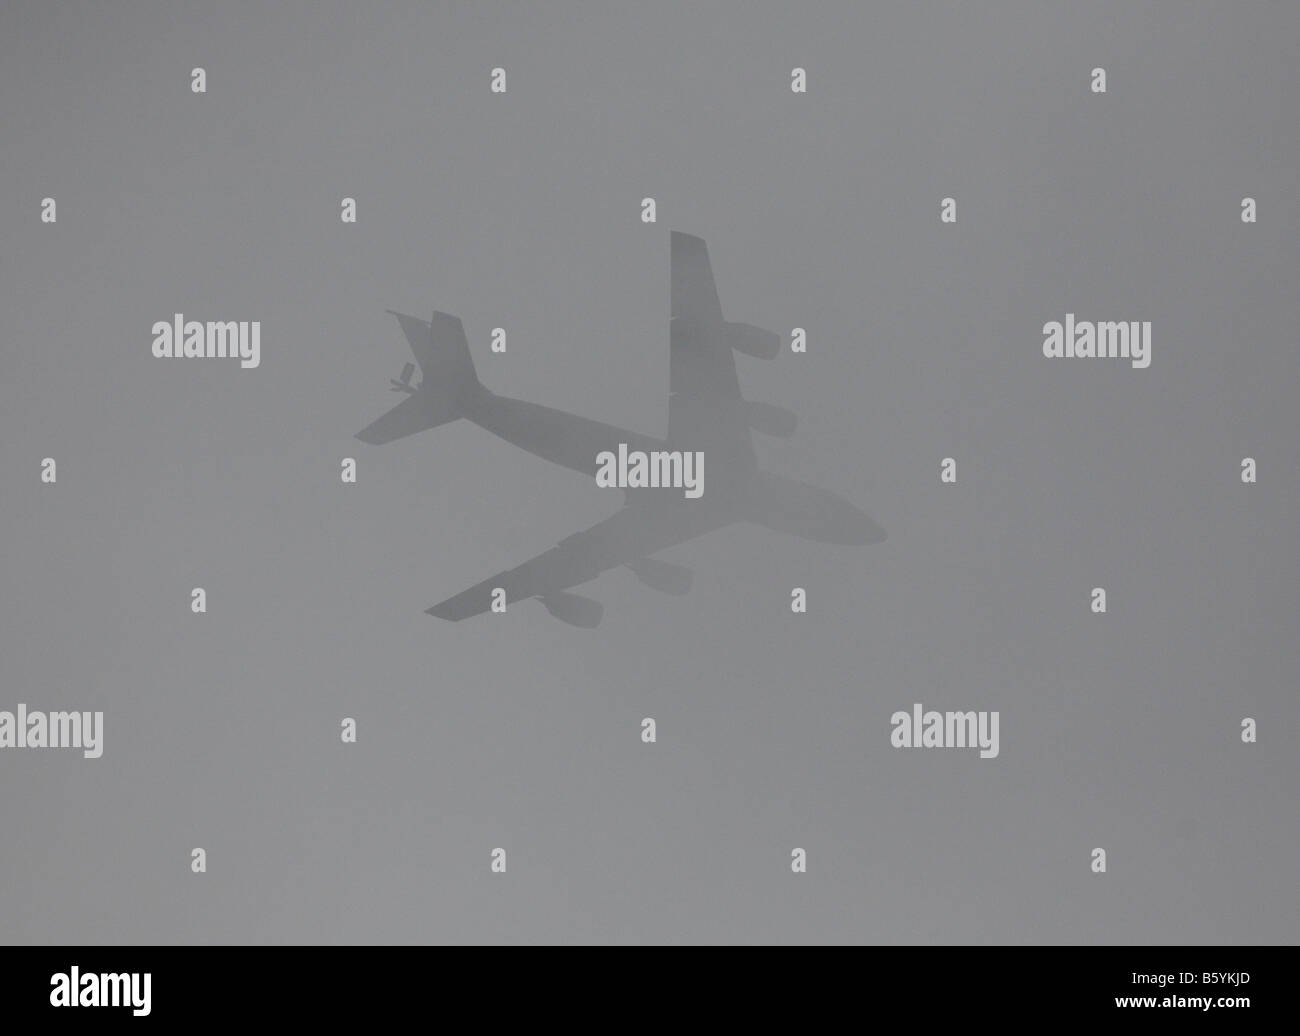 Aircraft in dense fog. - Stock Image